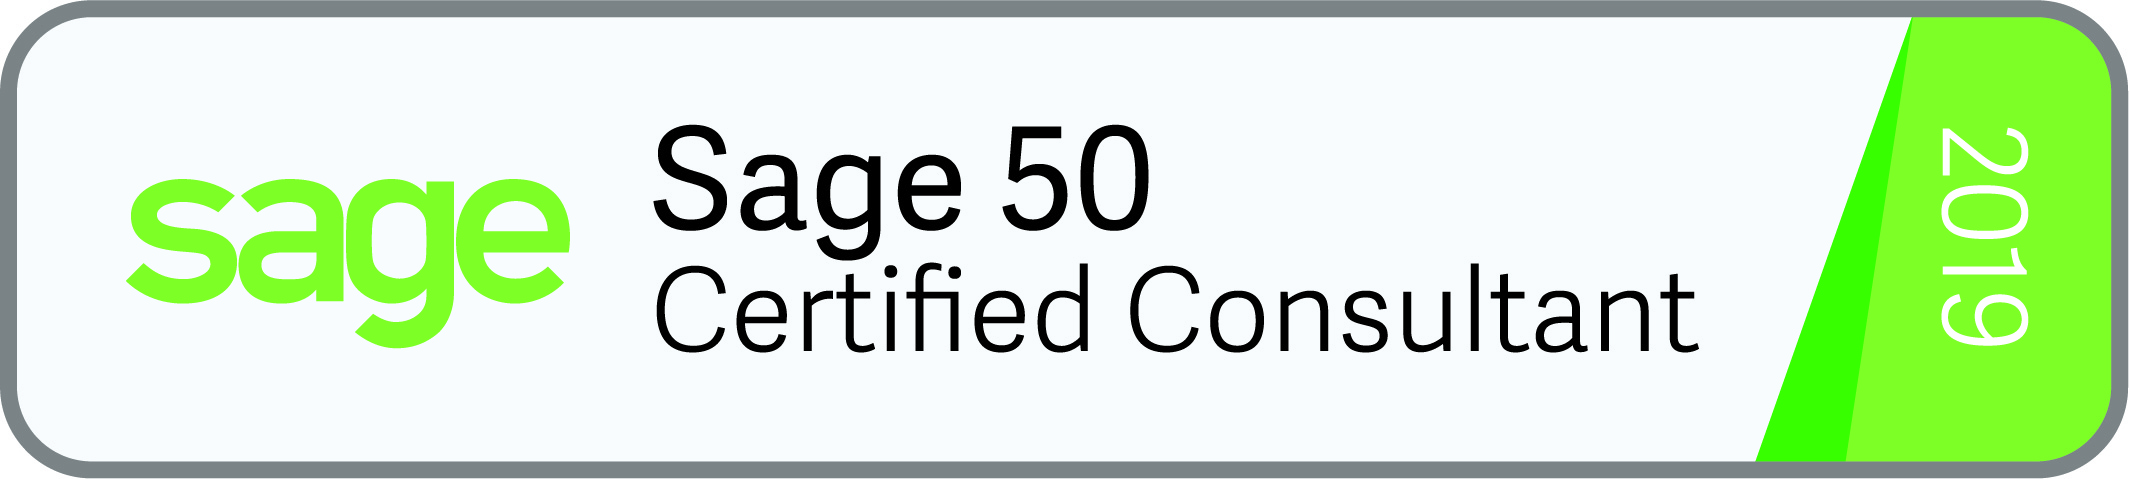 Sage_50_Certified_Consultant_2019.jpg